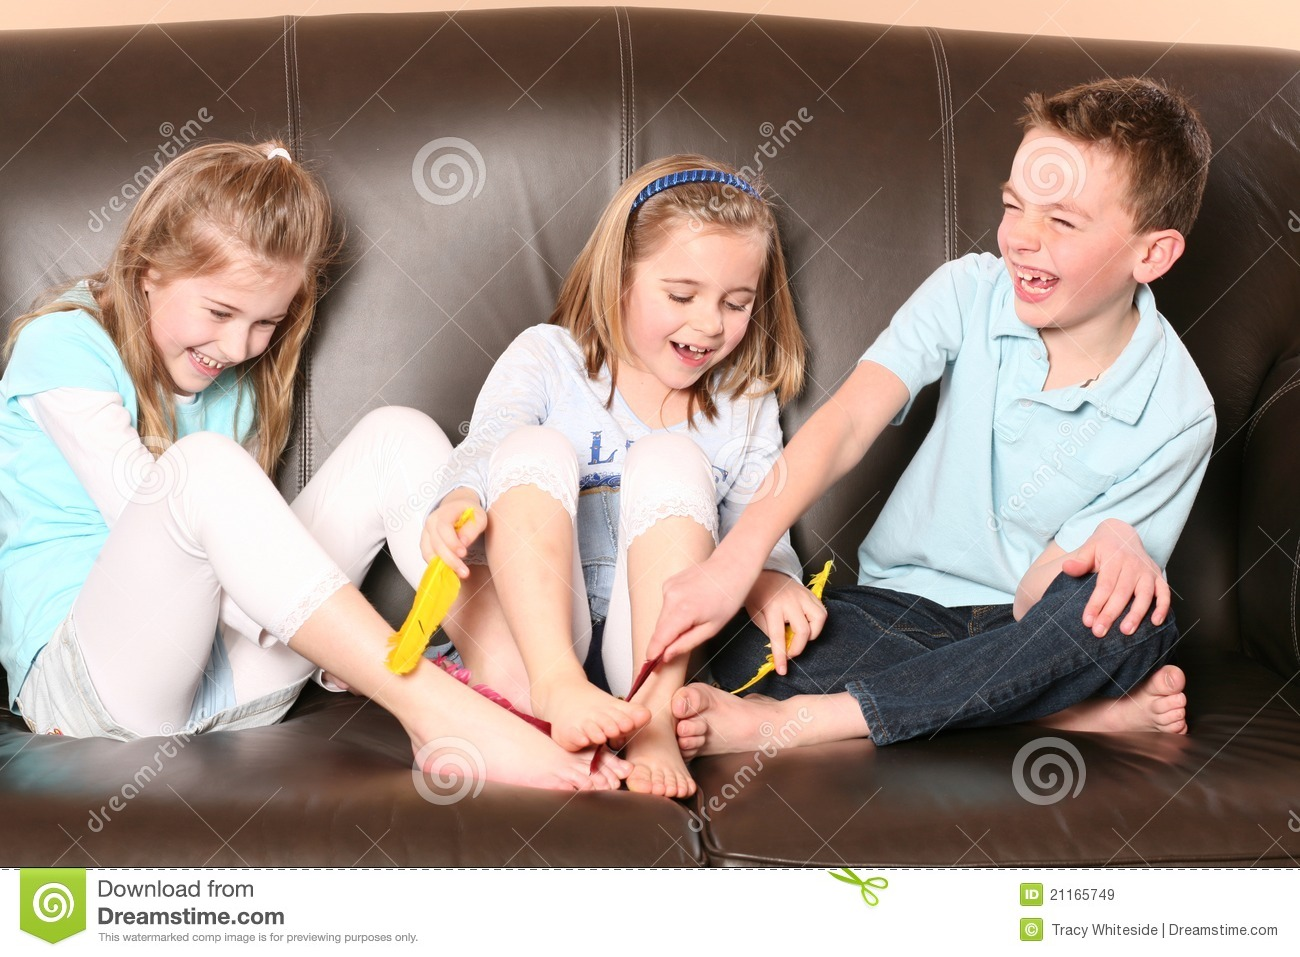 Royalty Free Stock Images: Children tickling feet with feather